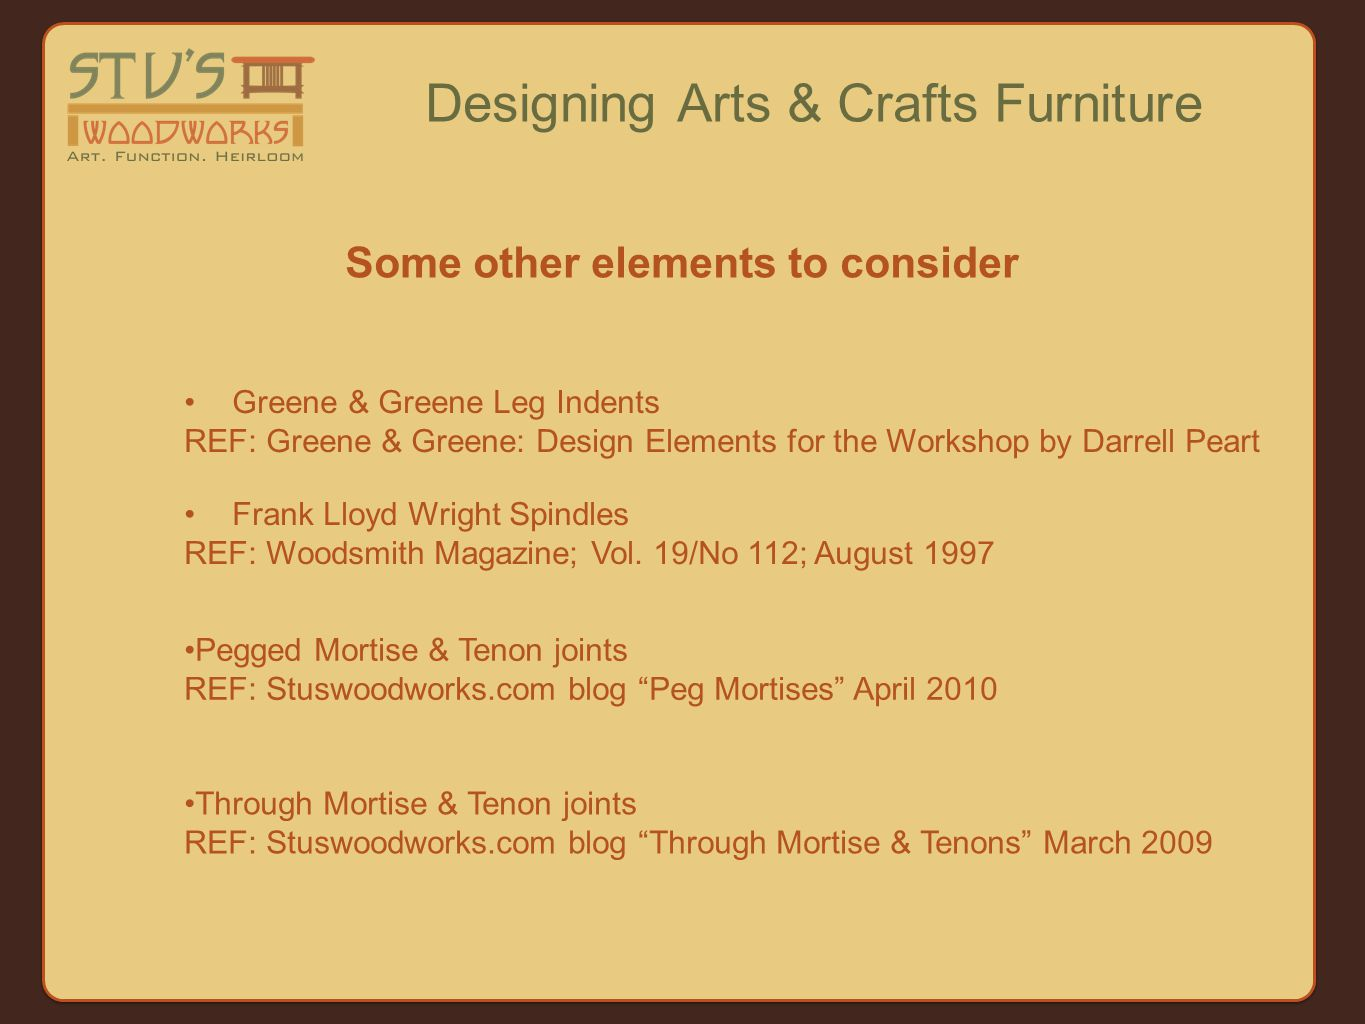 Some other elements to consider Designing Arts & Crafts Furniture Pegged Mortise & Tenon joints REF: Stuswoodworks.com blog Peg Mortises April 2010 Frank Lloyd Wright Spindles REF: Woodsmith Magazine; Vol.